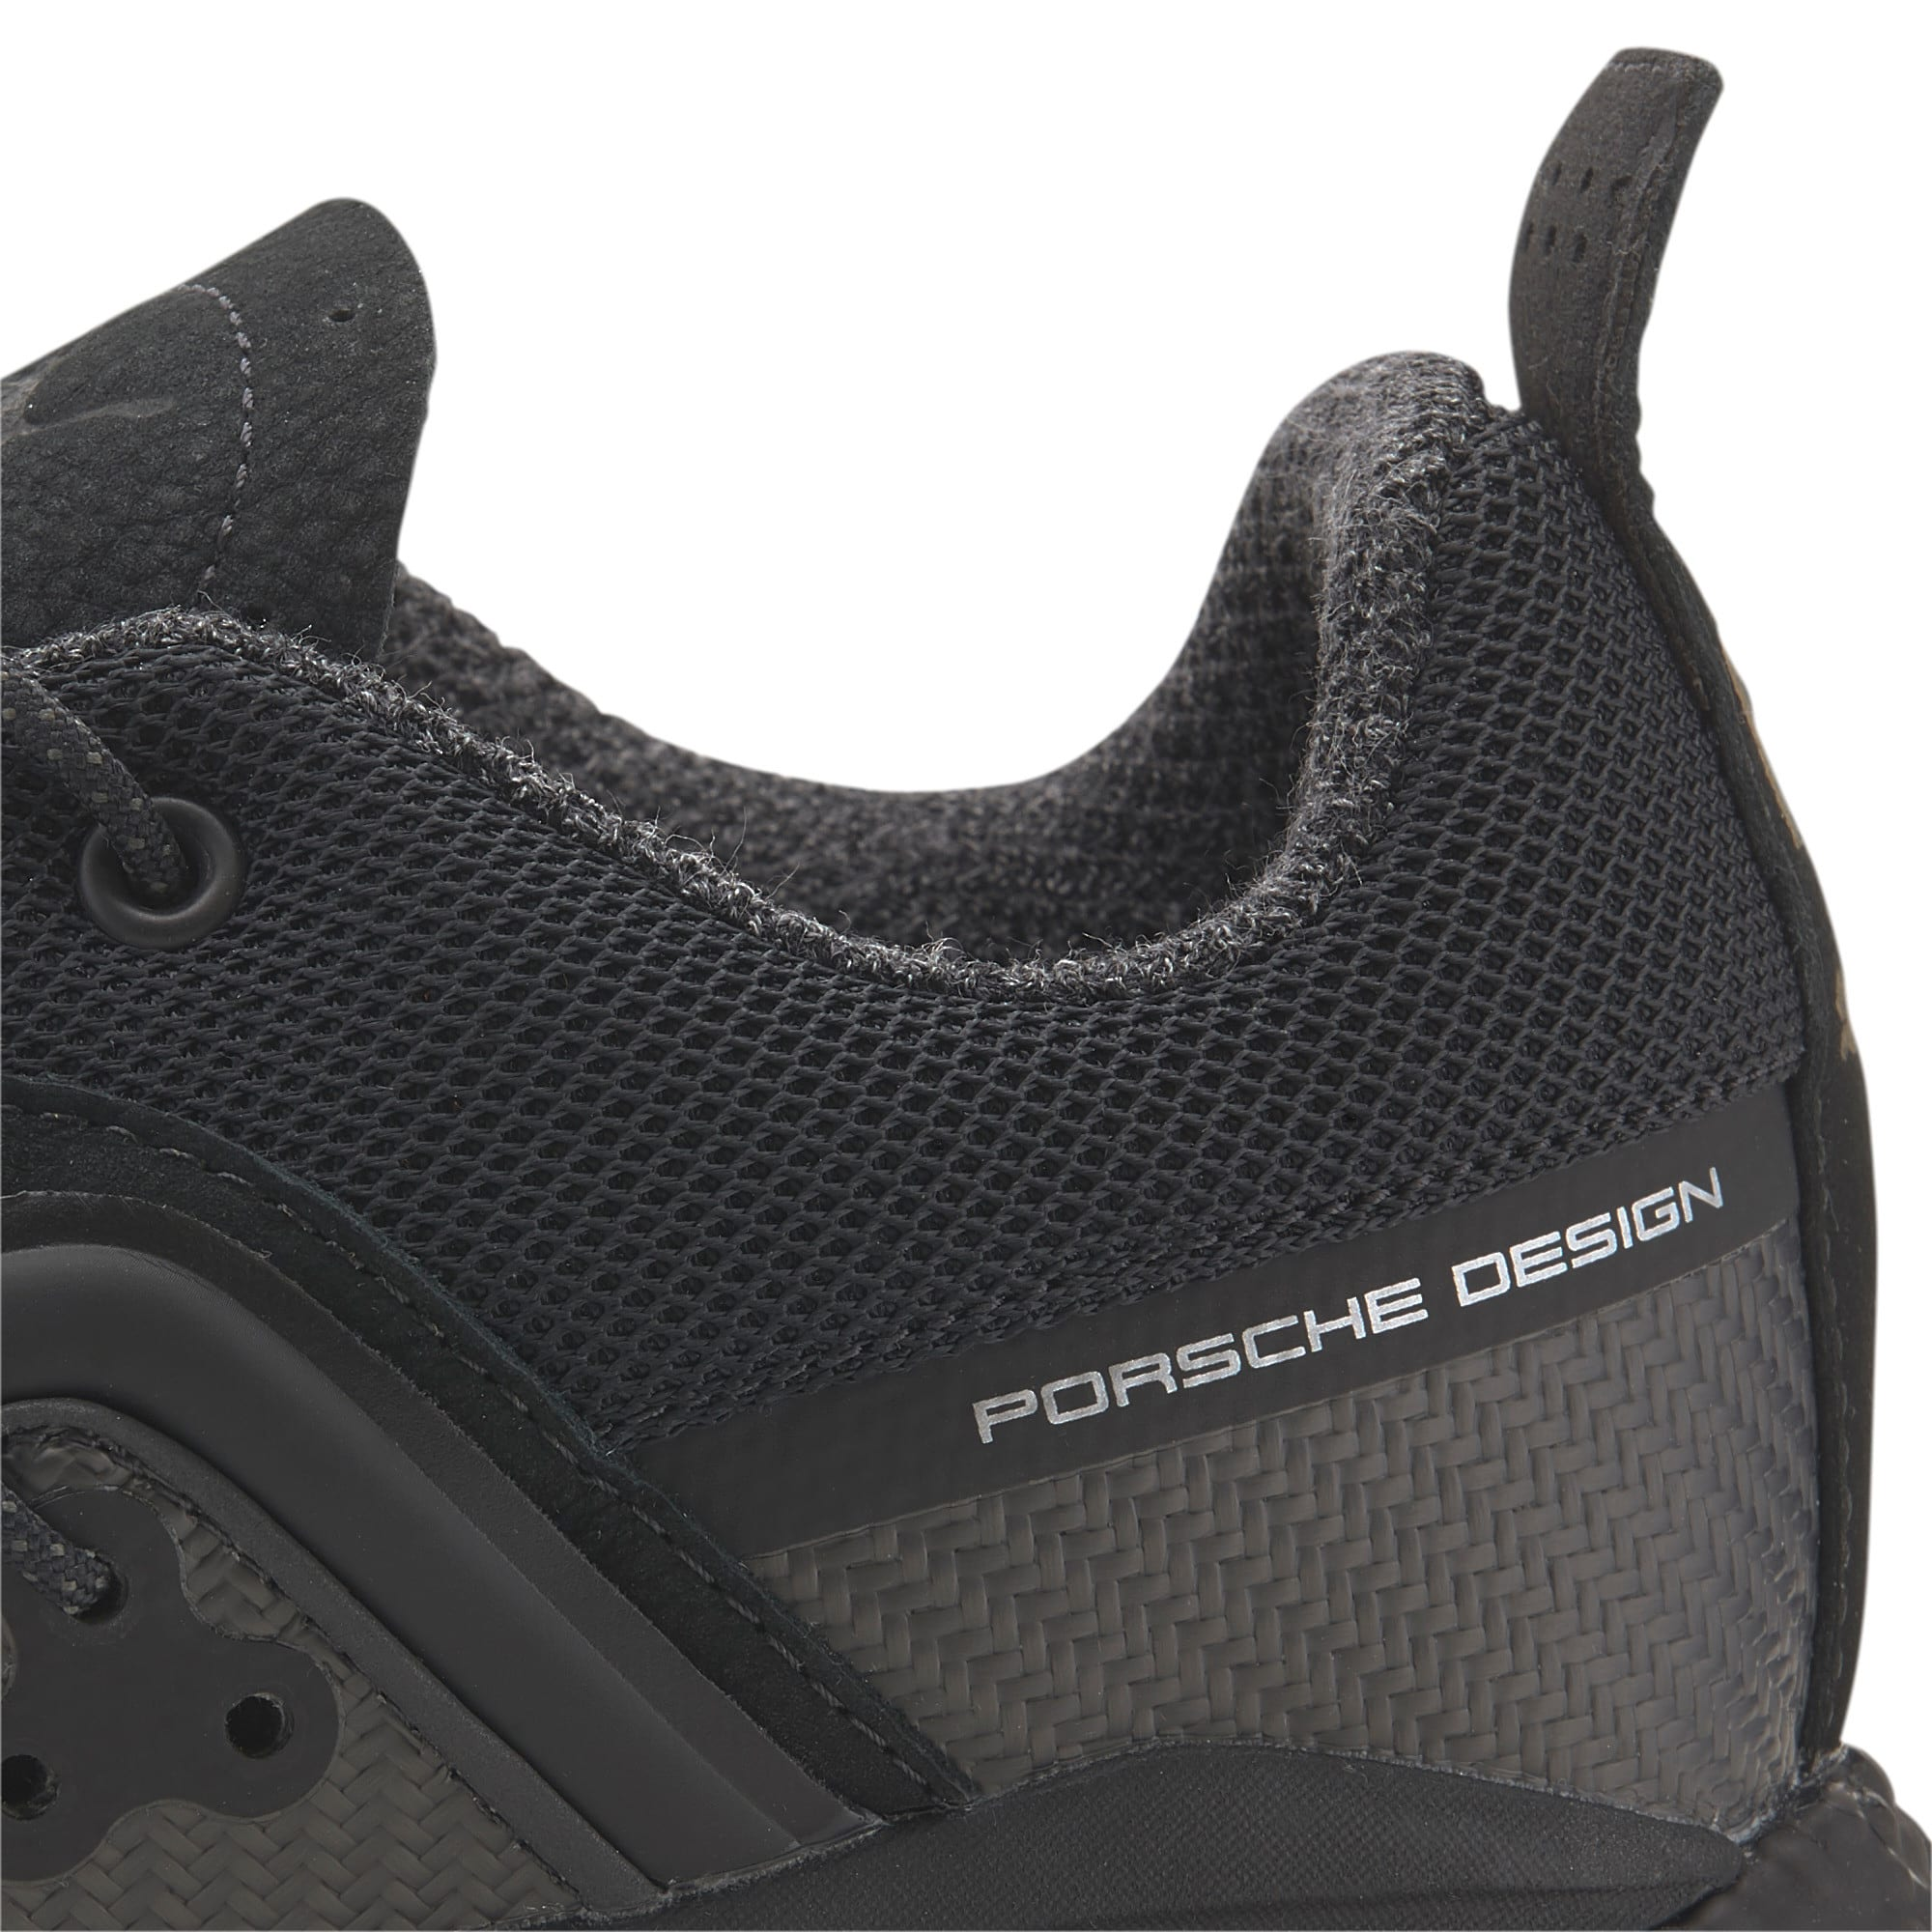 Thumbnail 8 of Porsche Design HYBRID Runner Men's Trainers, Jet Black-Jet Black, medium